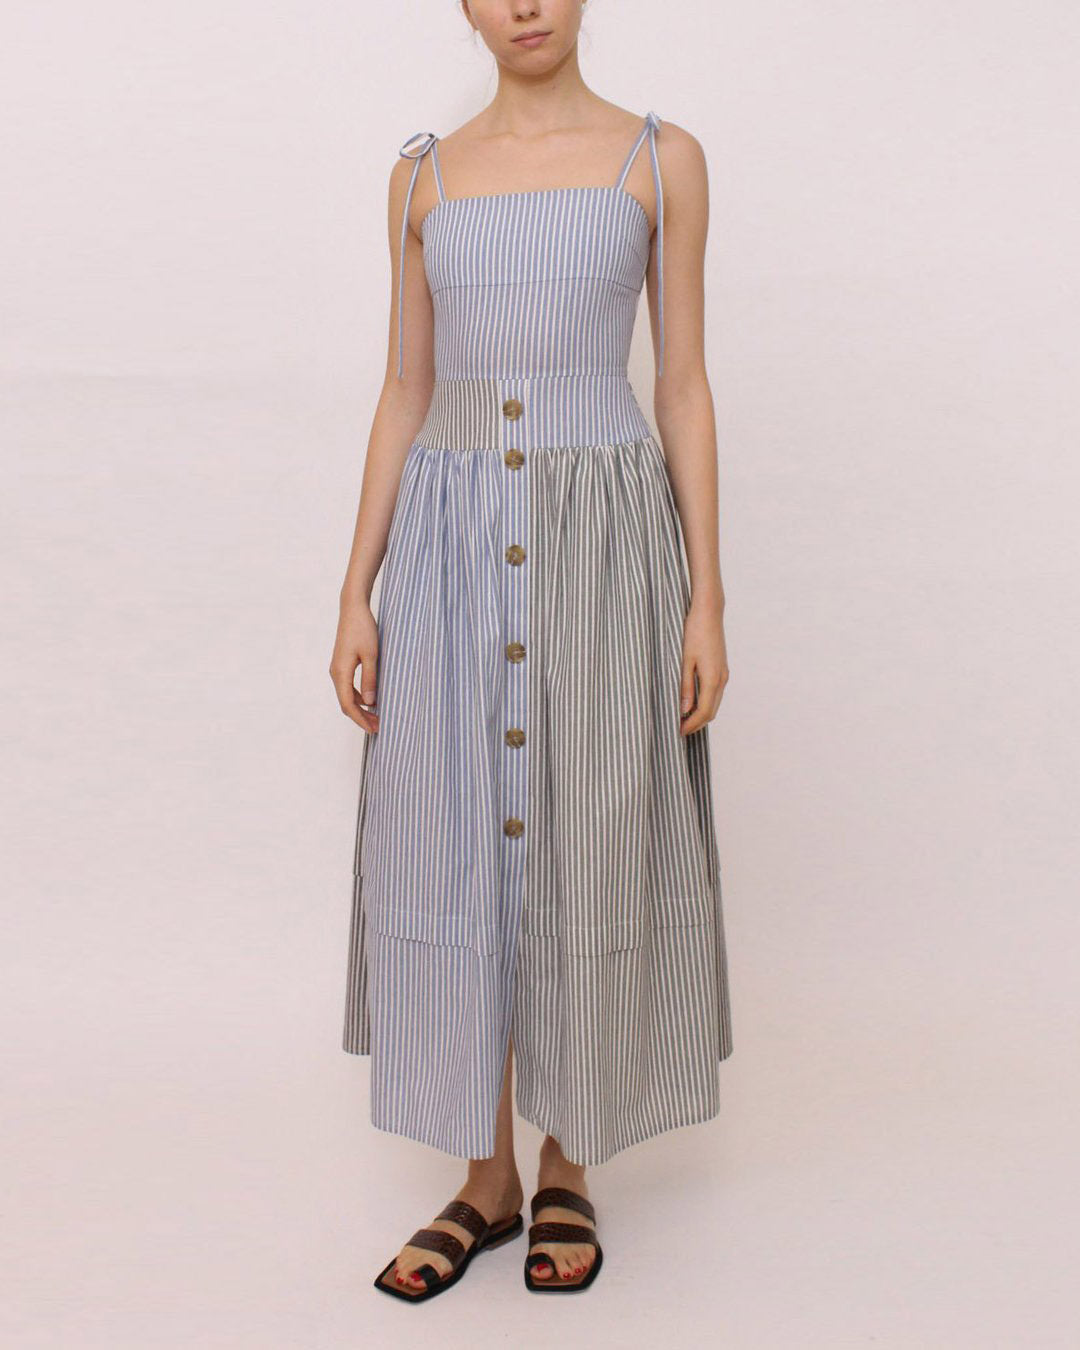 Issy Dress Cotton Stripe Mix